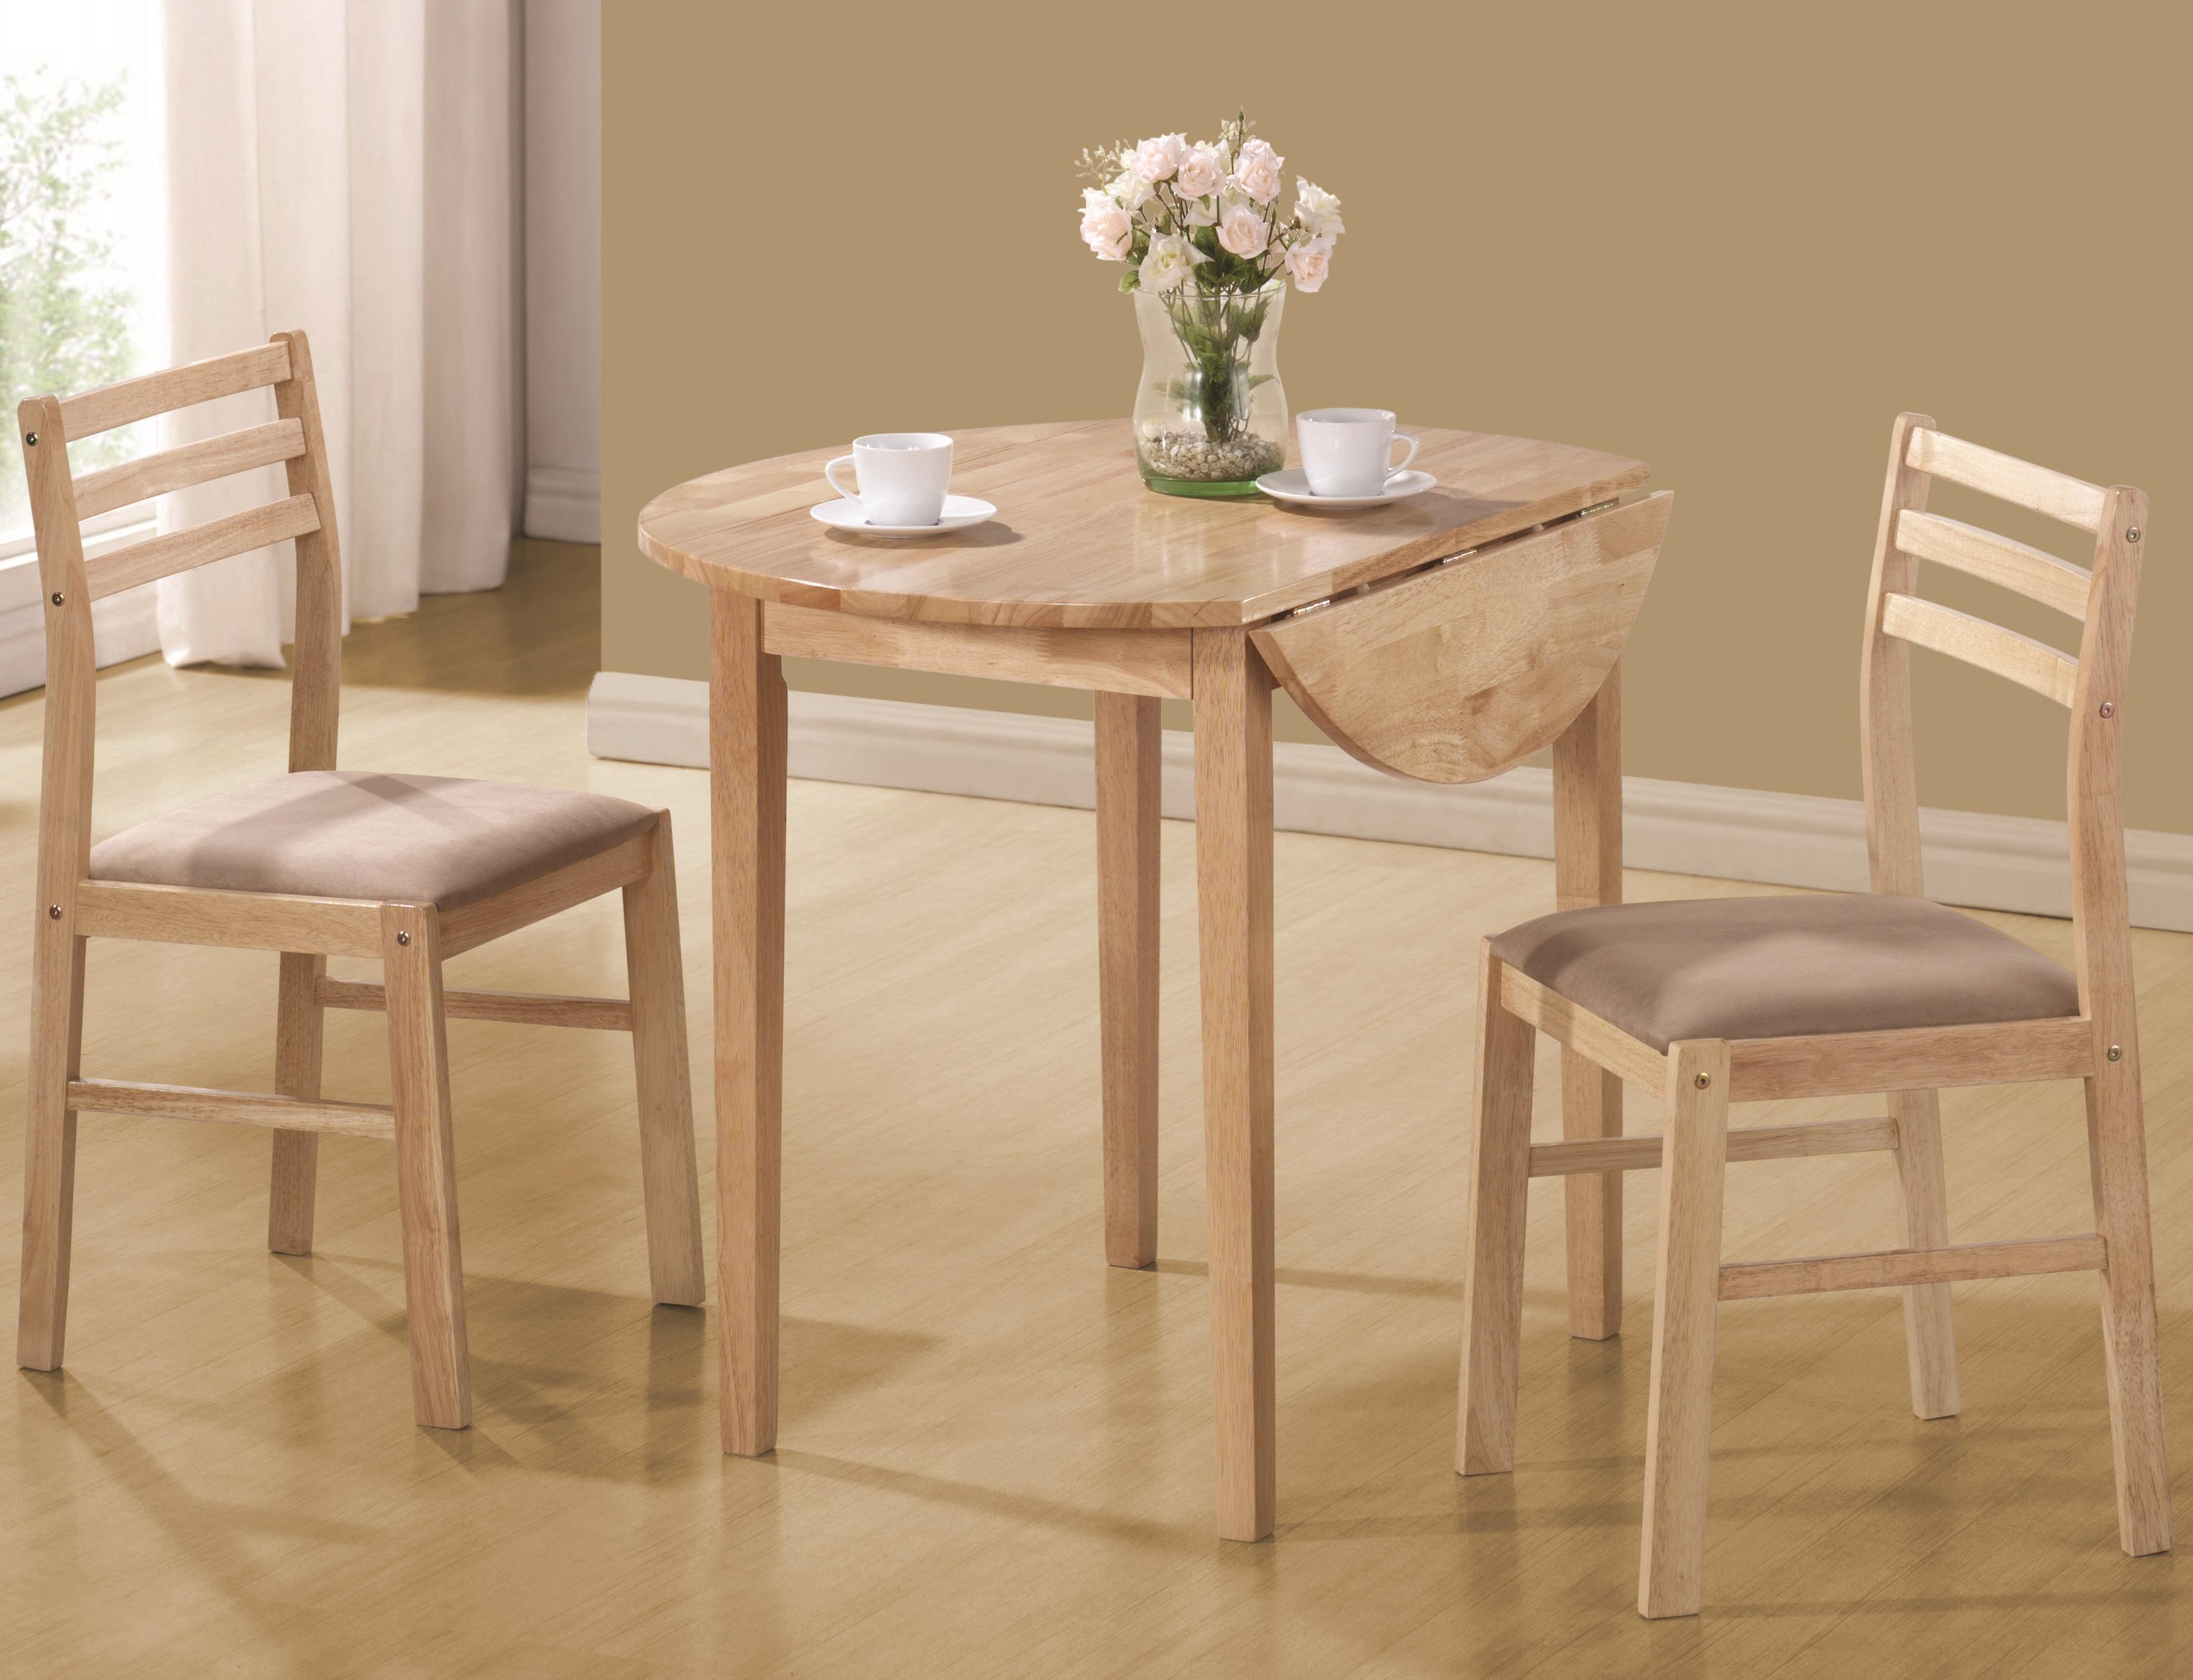 Dinettes Casual 3 Piece Table & Chair Setcoaster At Value City Furniture Pertaining To Newest 3 Piece Dining Sets (View 10 of 20)